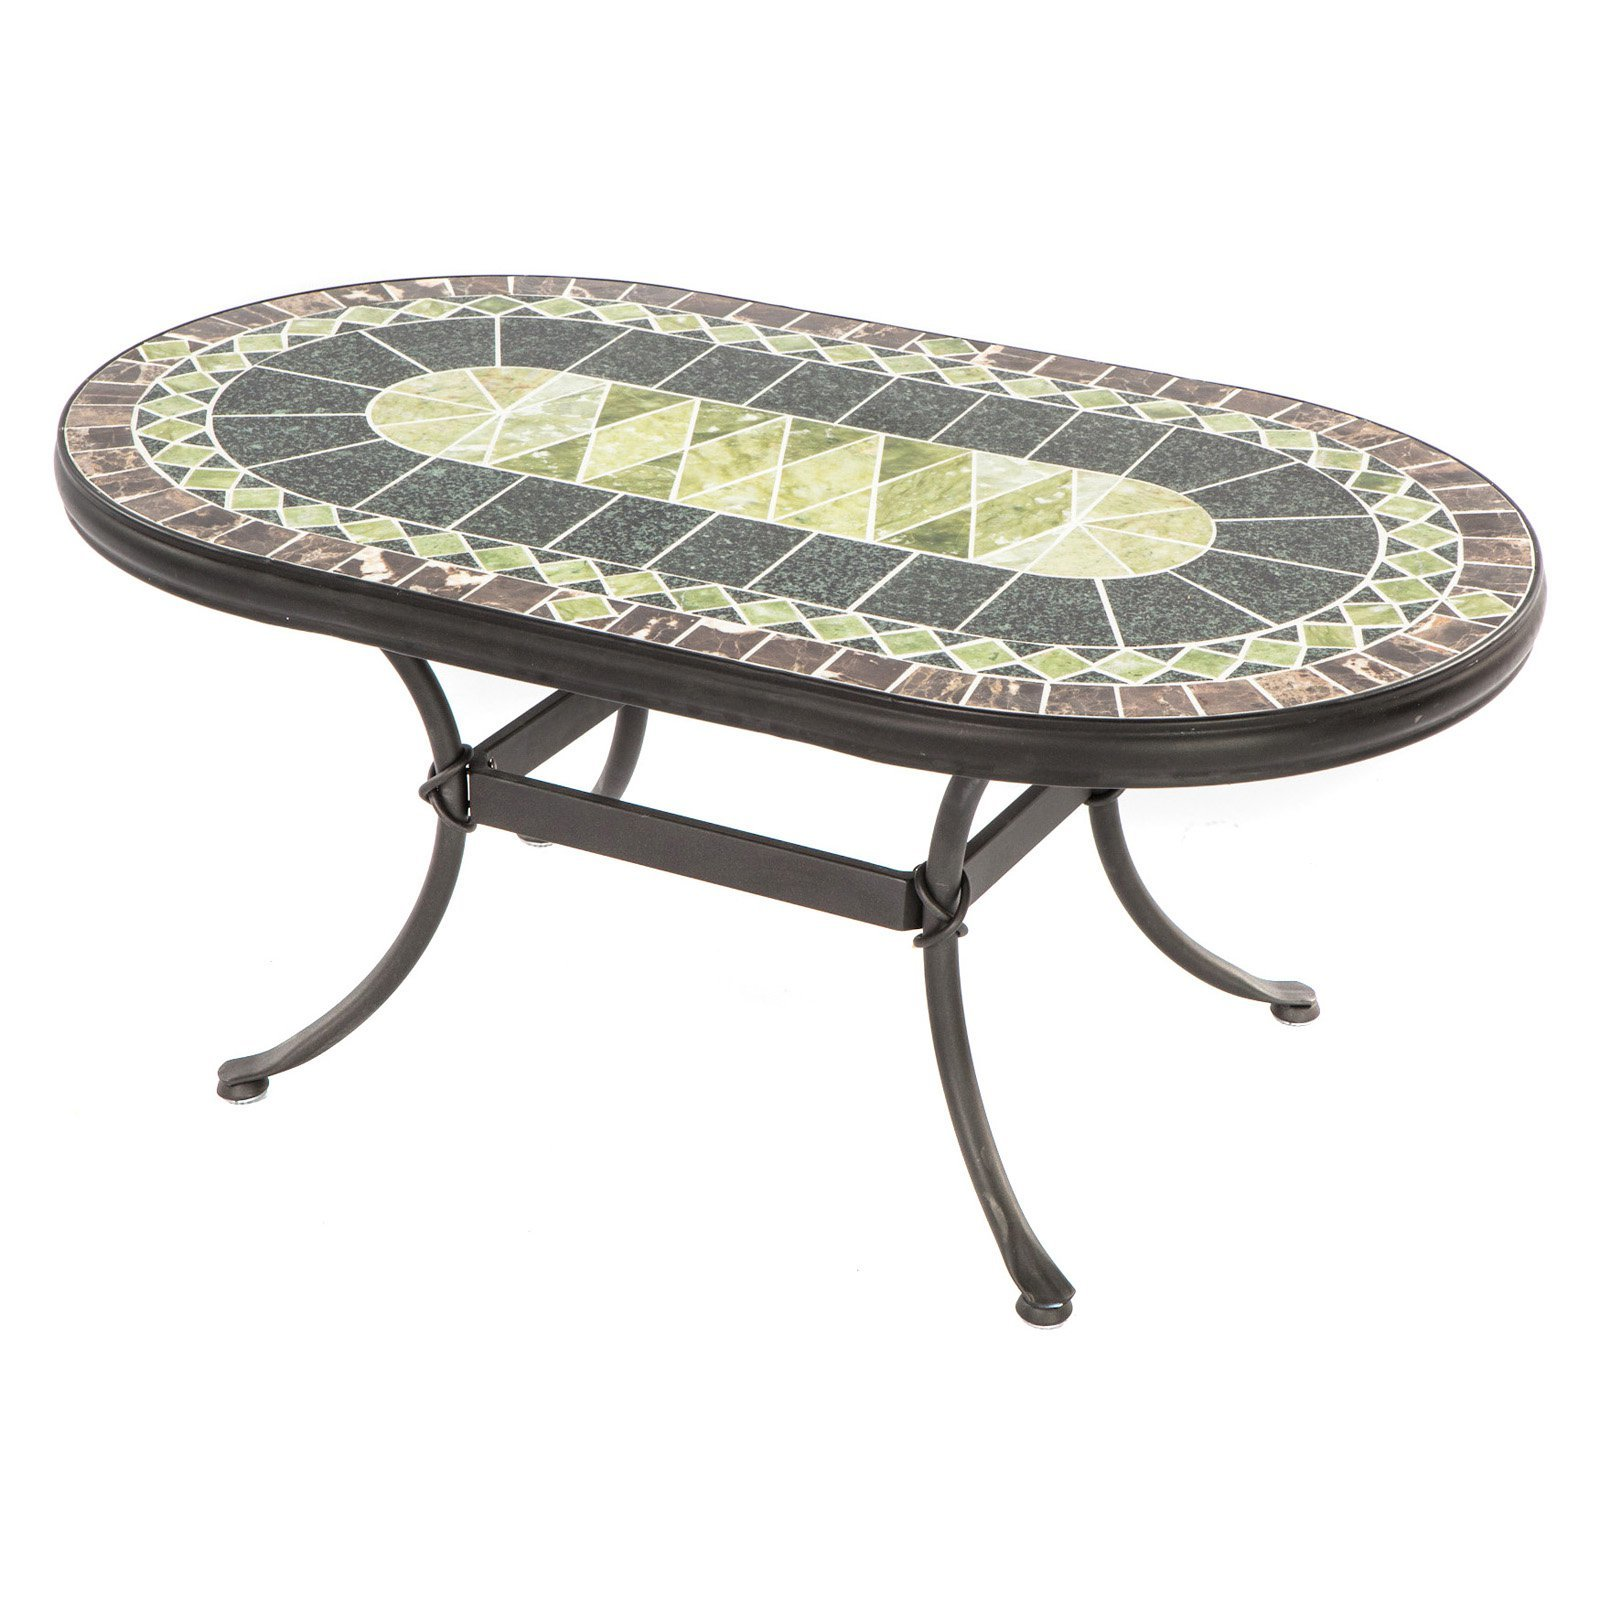 impressive patio accent table martha stewart living charlottetown wonderful amazing mosaic outdoor coffee basilica home design inspiration wicker tiffany butterfly lamp original